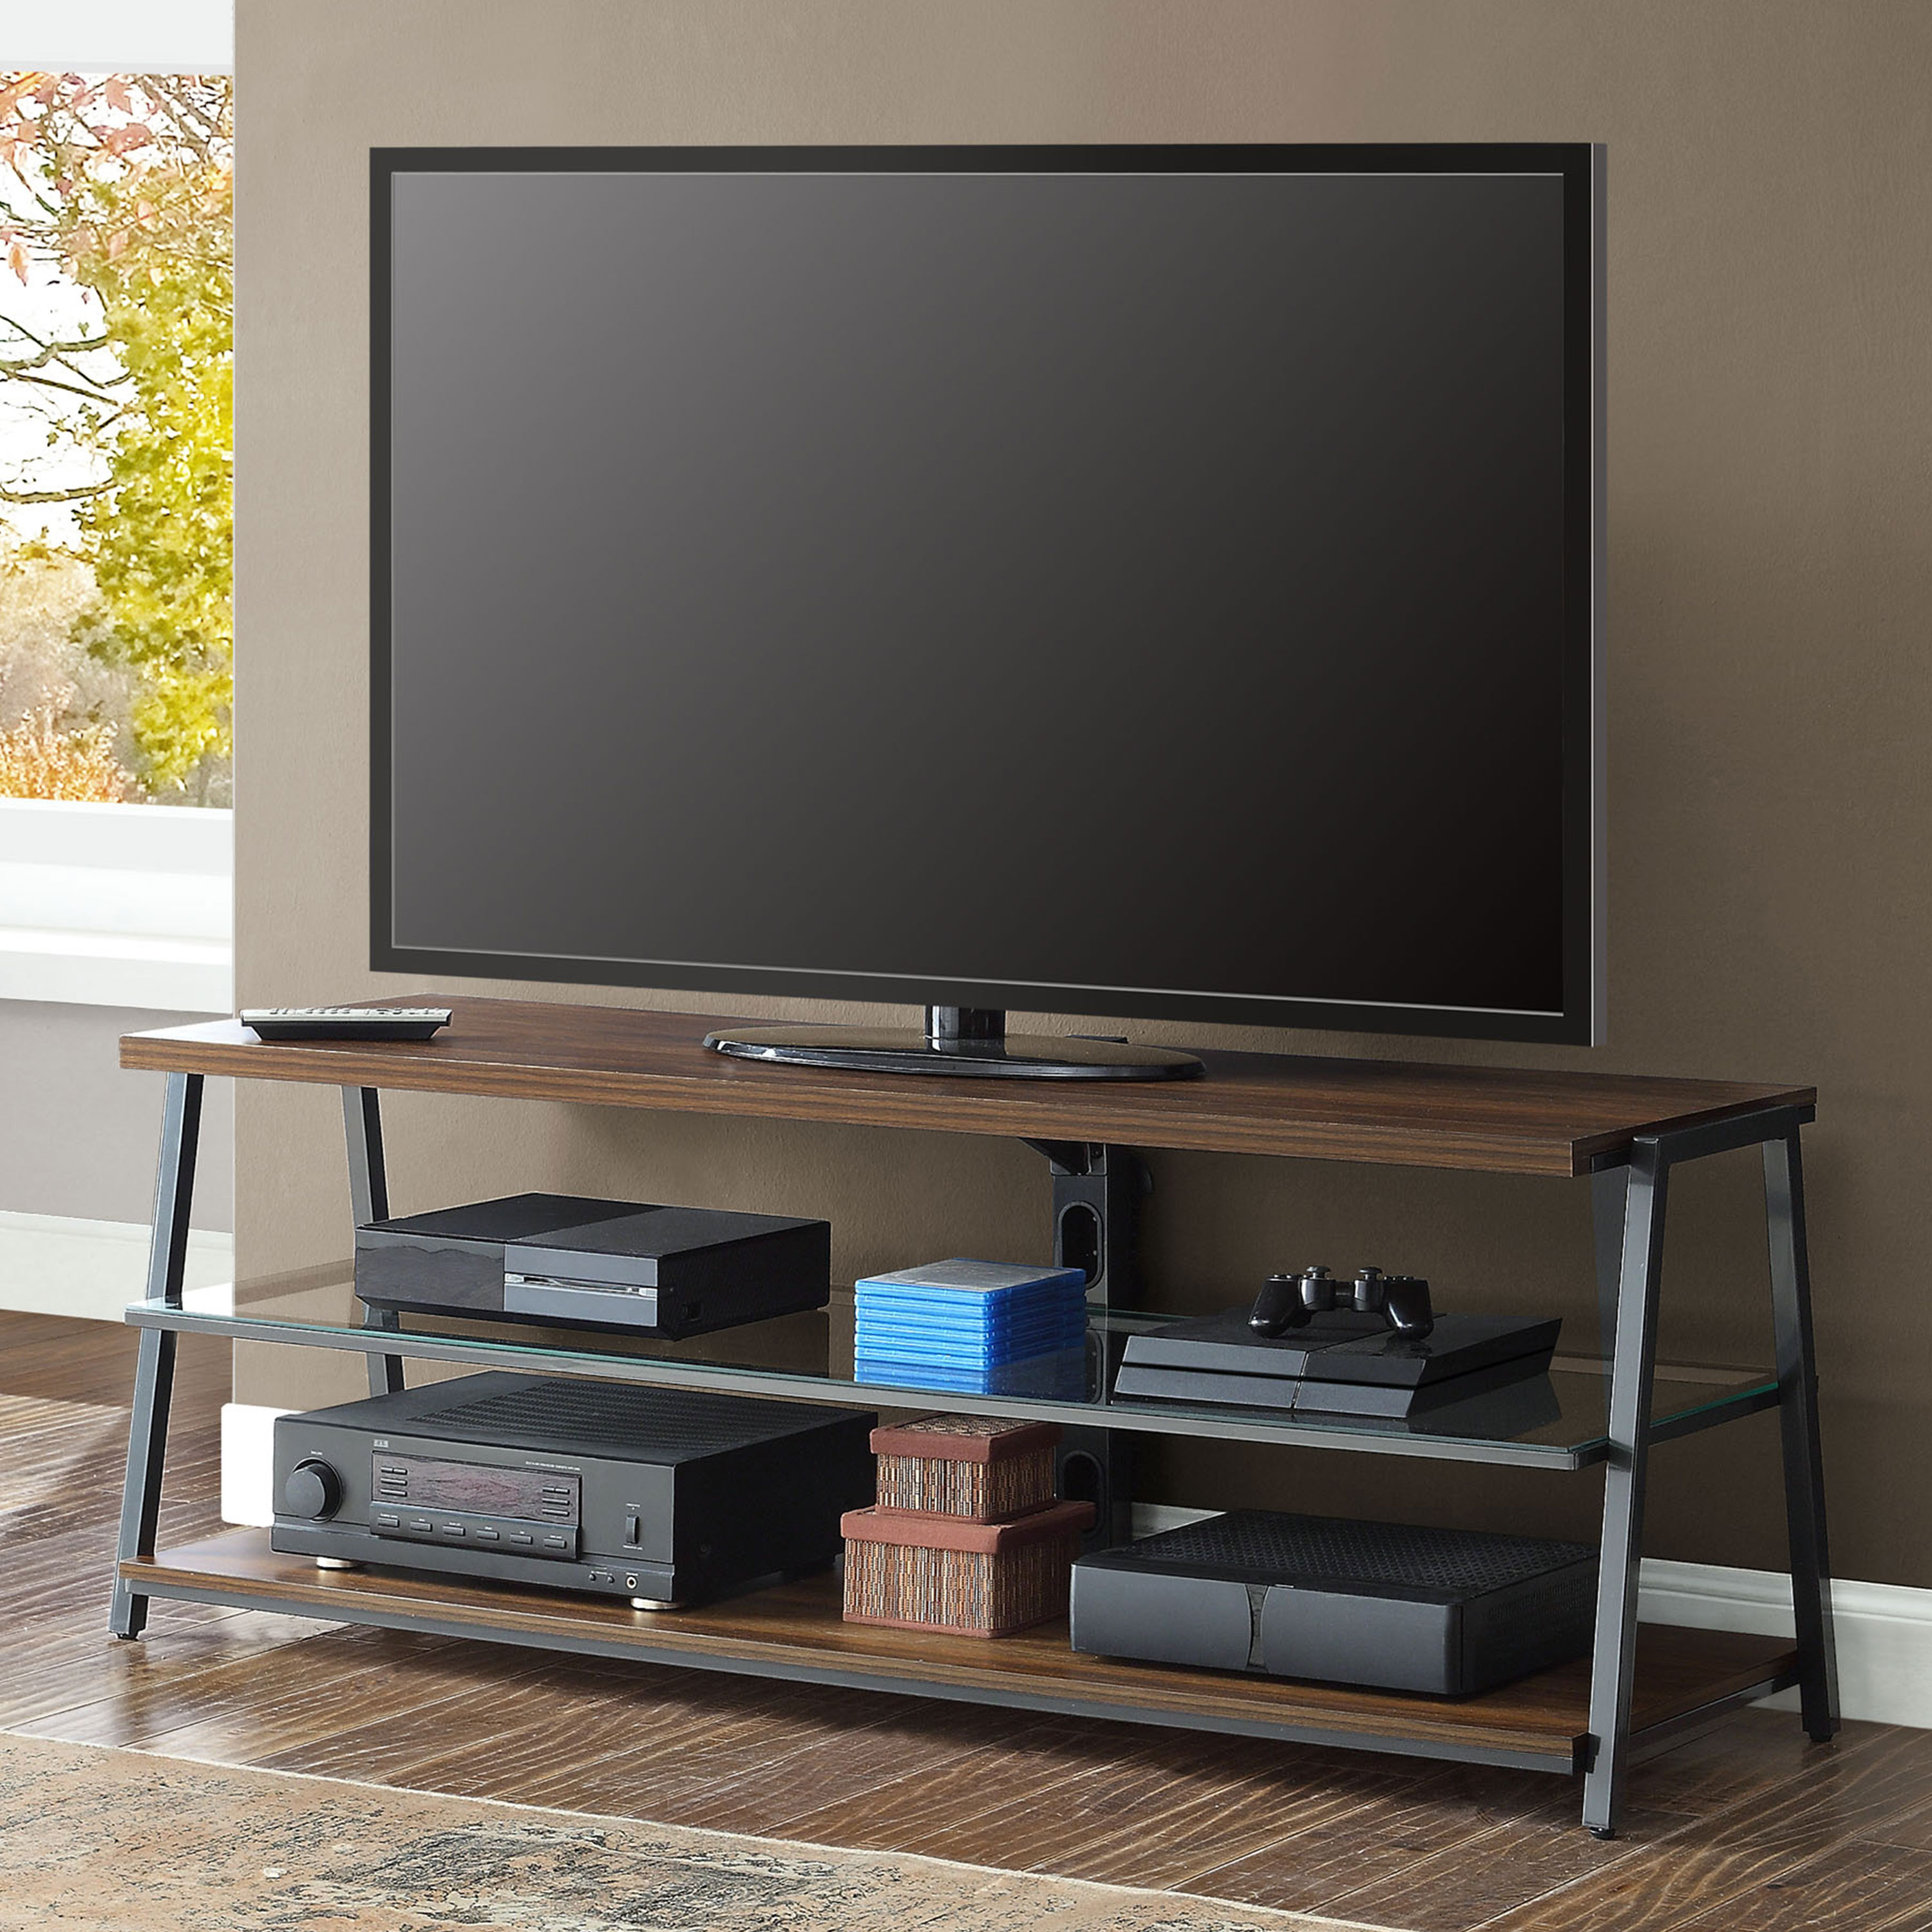 """Mainstays Arris Tv Stand For 70"""" Flat Panel Tvs Up To 135 Lbs Throughout Canyon 64 Inch Tv Stands (View 18 of 20)"""